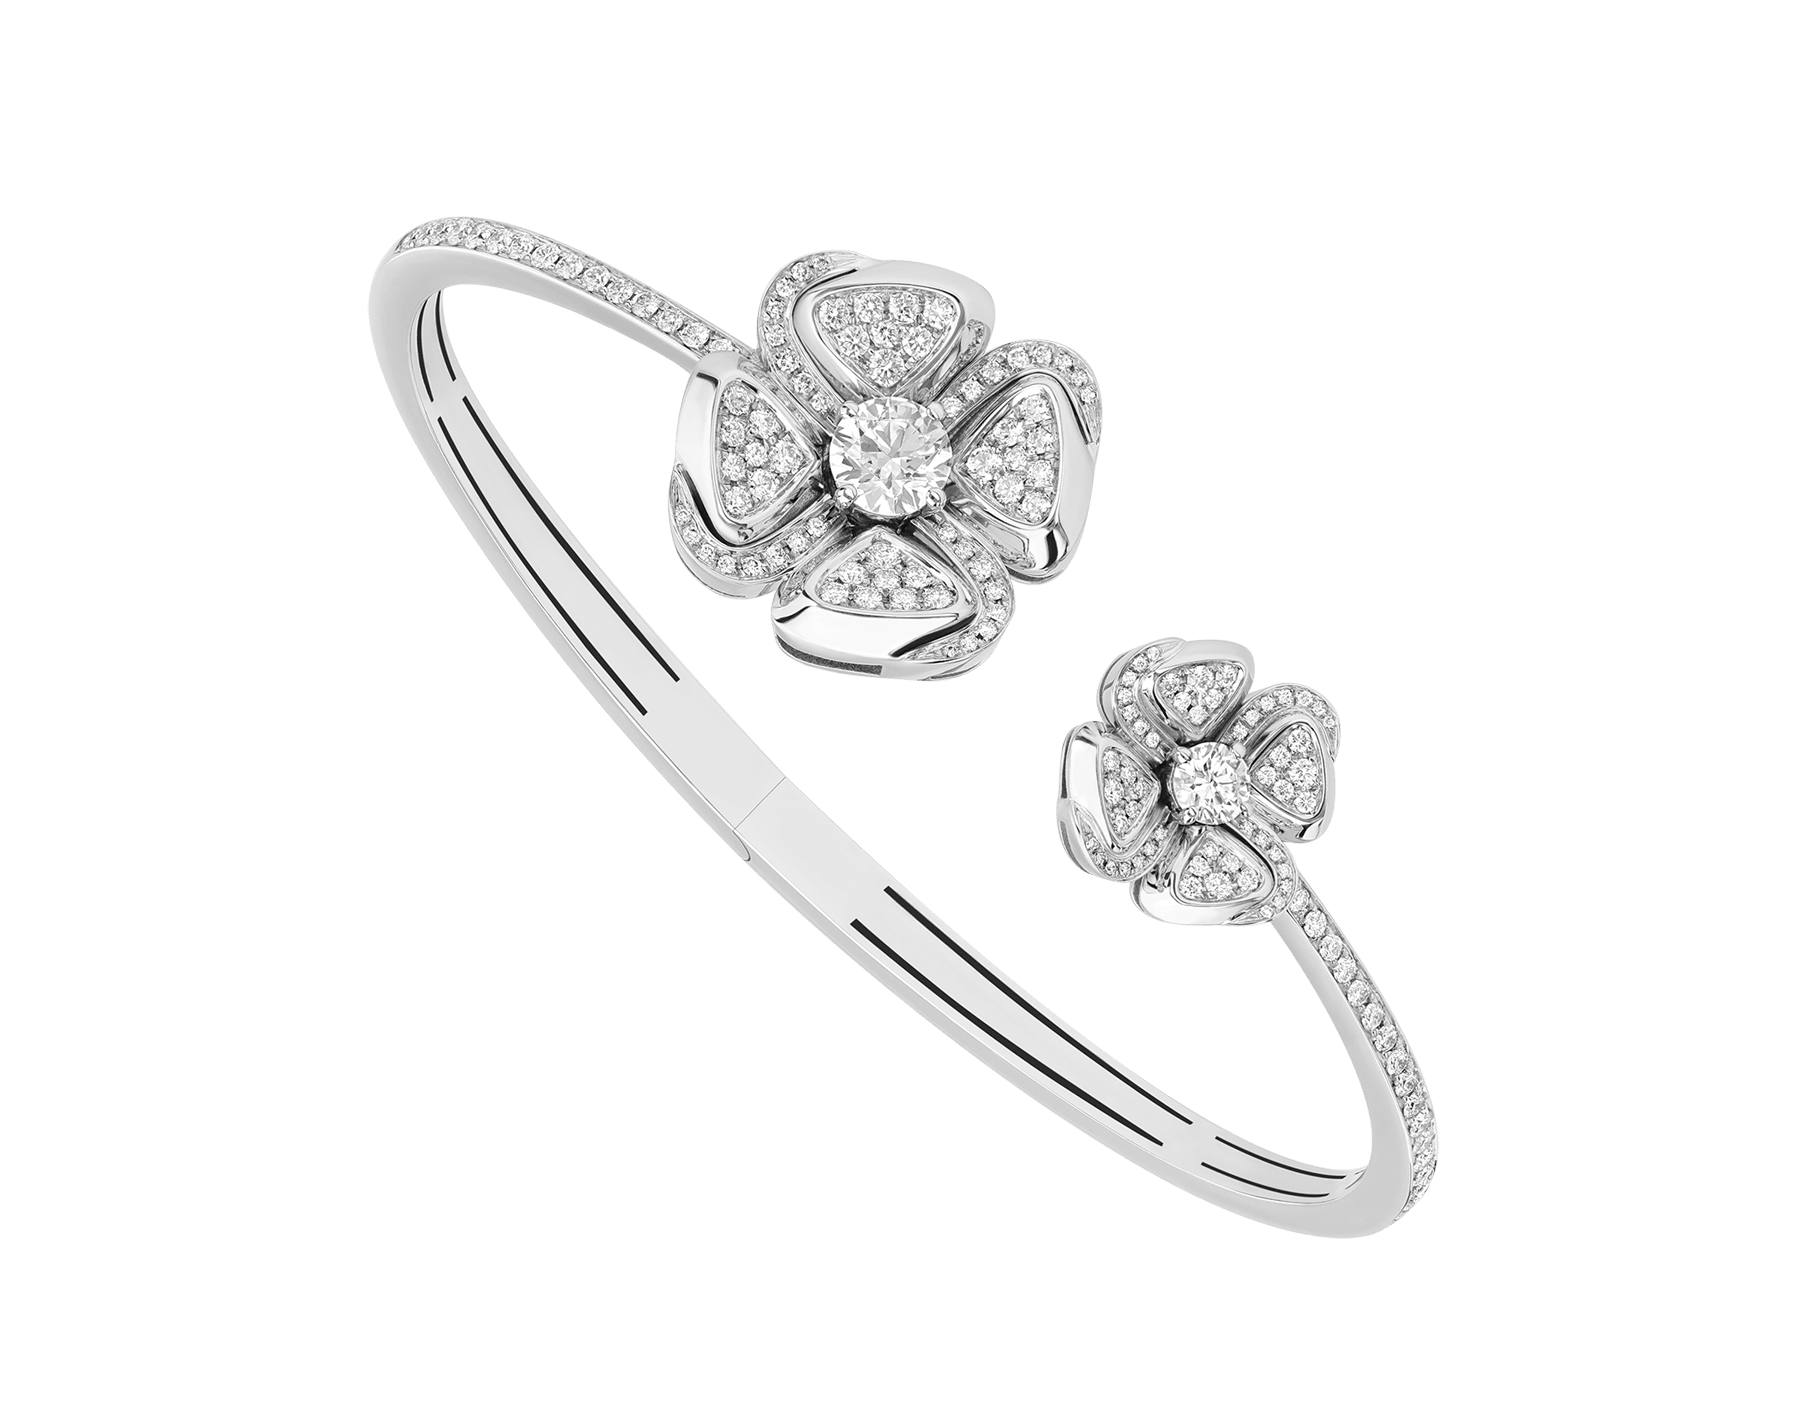 Fiorever 18 kt white gold bangle set with two central diamonds and pavé diamonds. BR858890 image 1